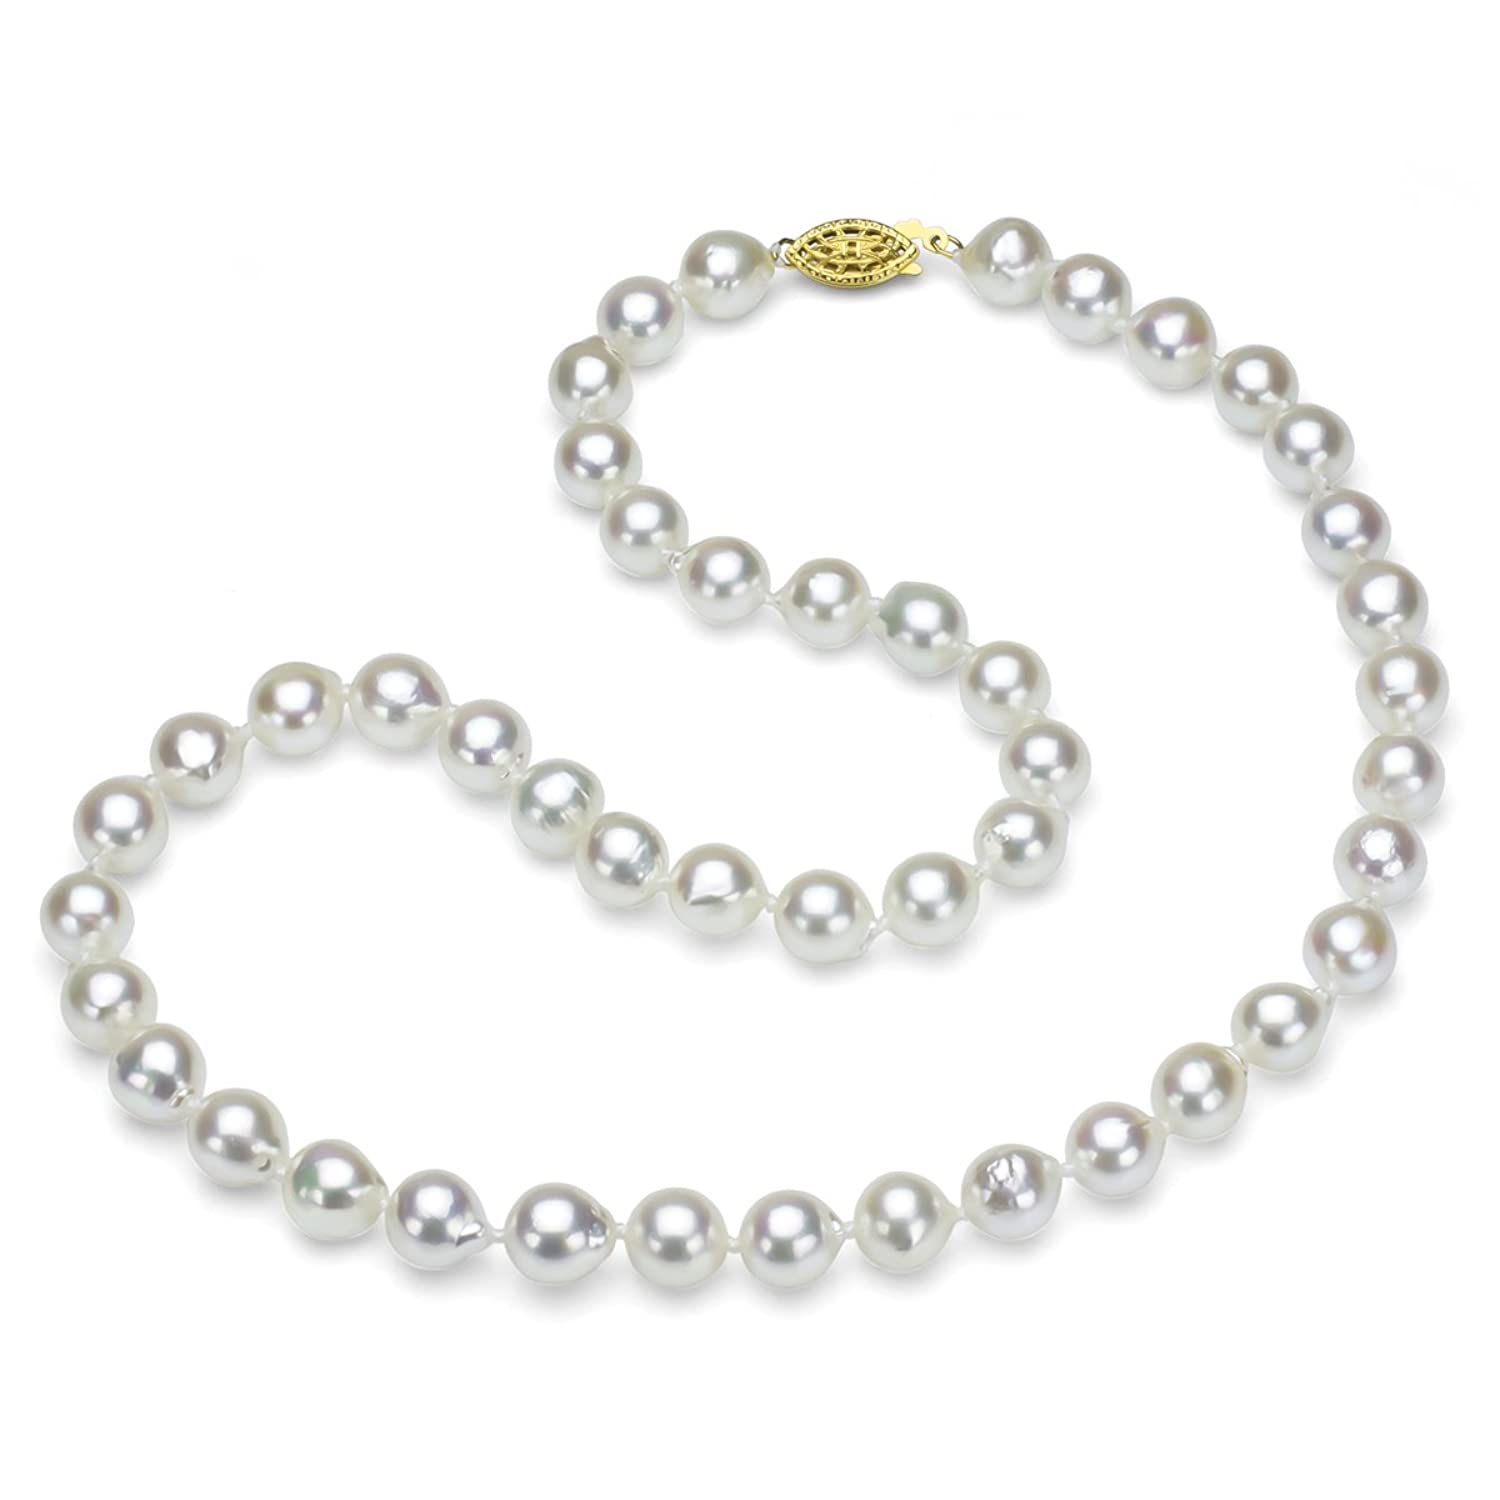 """18k Yellow Gold Plated Sterling Silver 8-8.5mm White Off-Shape Akoya Cultured Pearl Necklace, 18"""""""